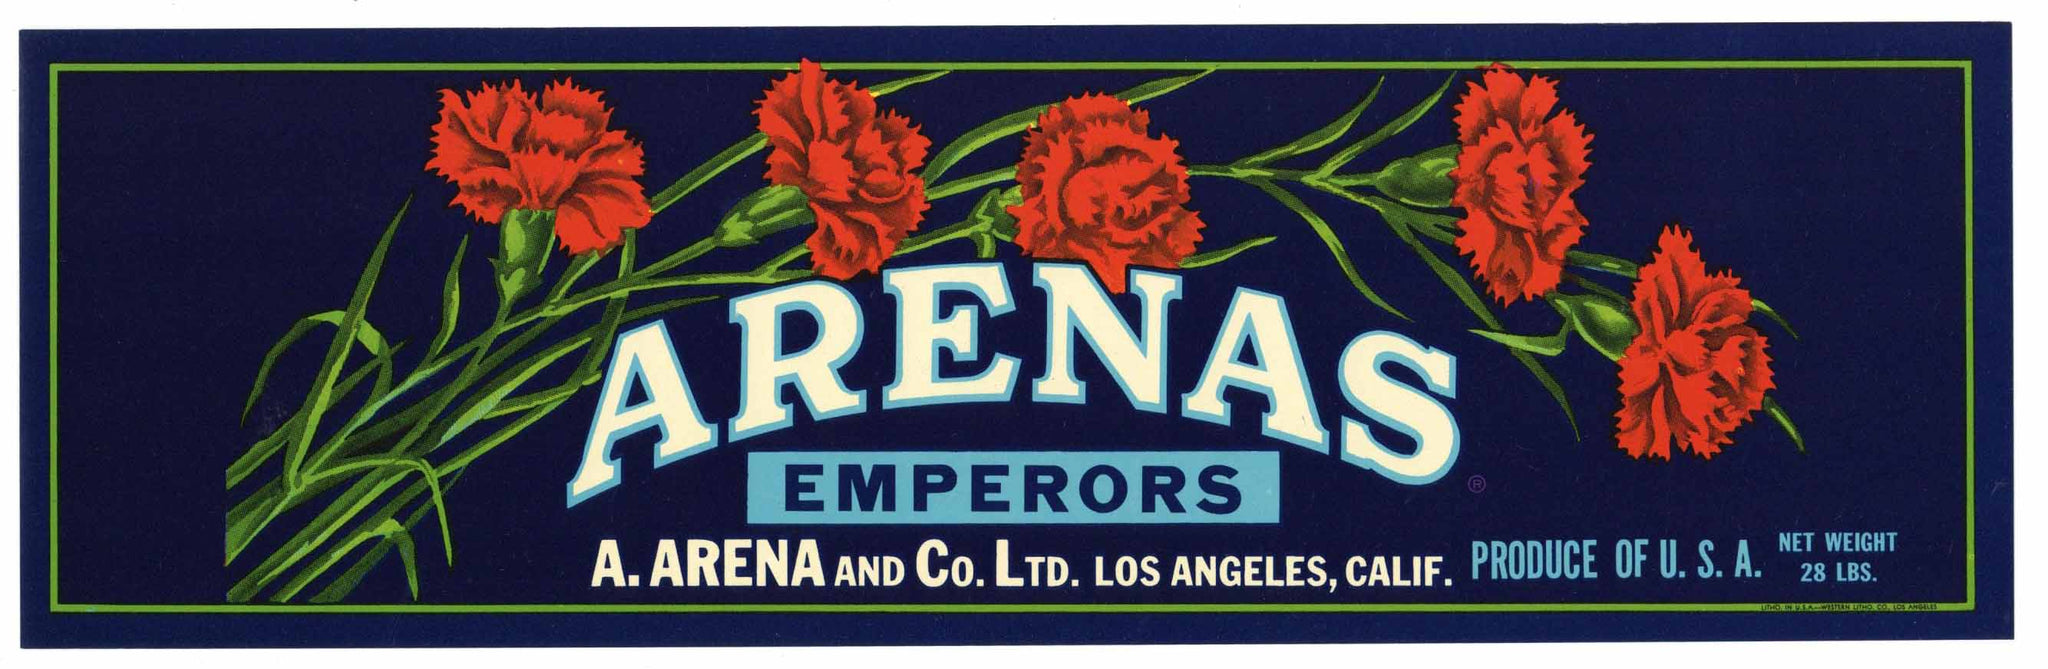 Arenas Brand Vintage Grape Crate Label